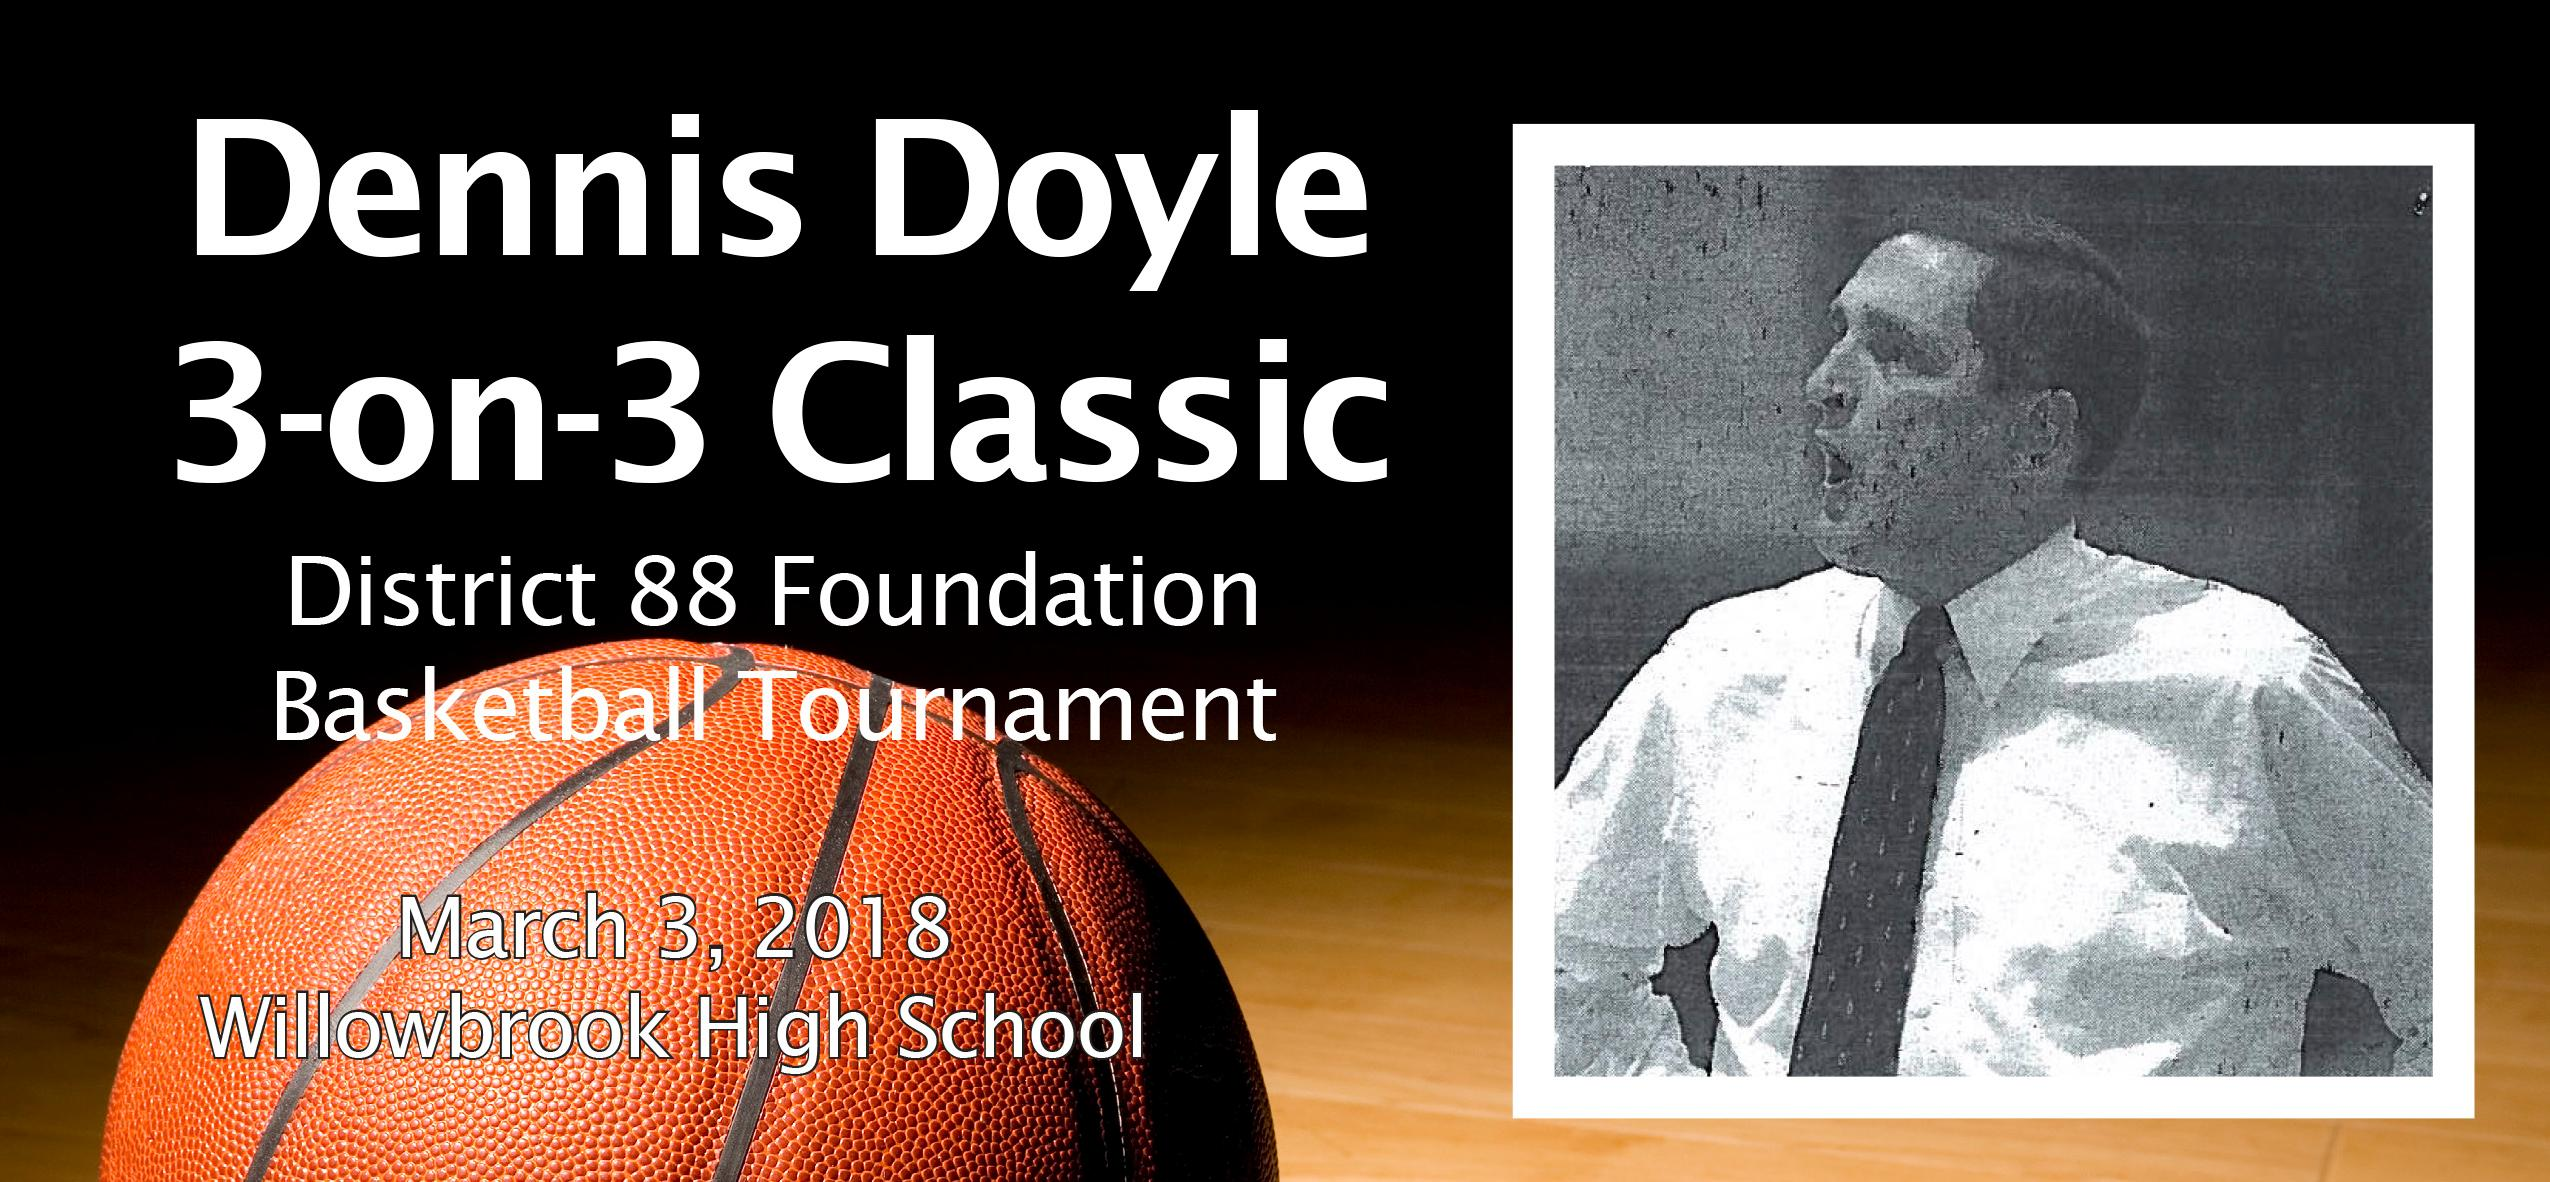 You're invited to participate in the 2018 Dennis Doyle 3-on-3 Classic District 88 Foundation Basketball Tournament